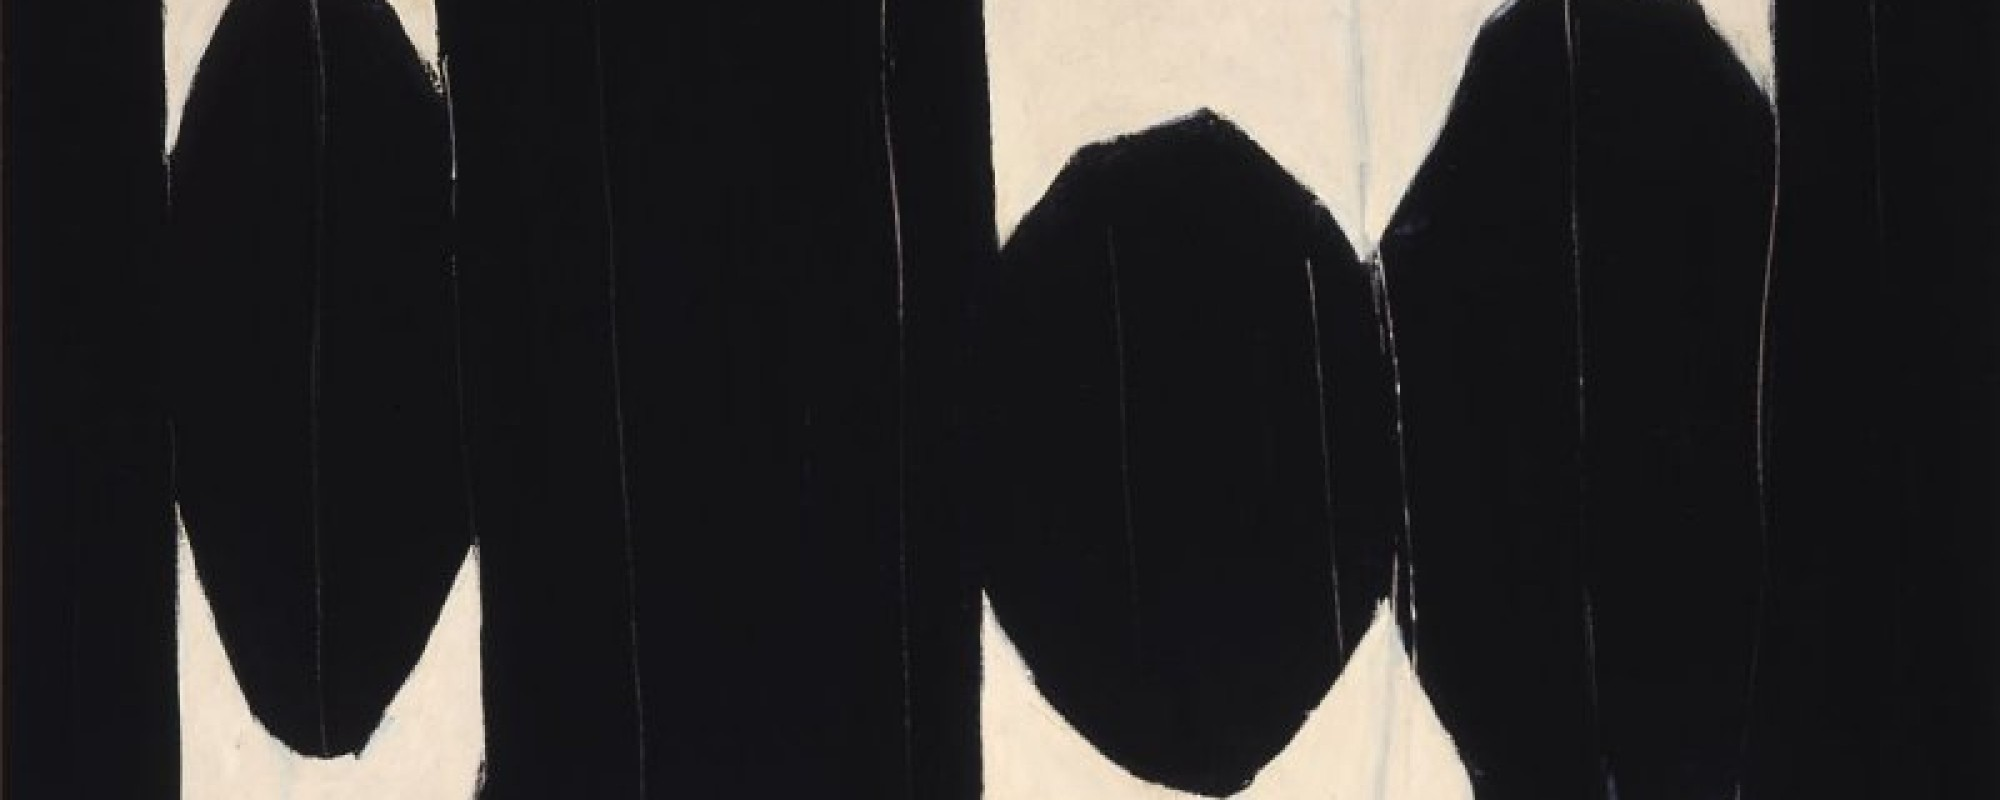 Robert Motherwell, At Five in the Afternoon, 1950. Oil on hardboard. Fine Arts Museums of San Francisco, bequest of Josephine Morris. Art © Dedalus Foundation Inc./Licensed by VAGA, New York, NY